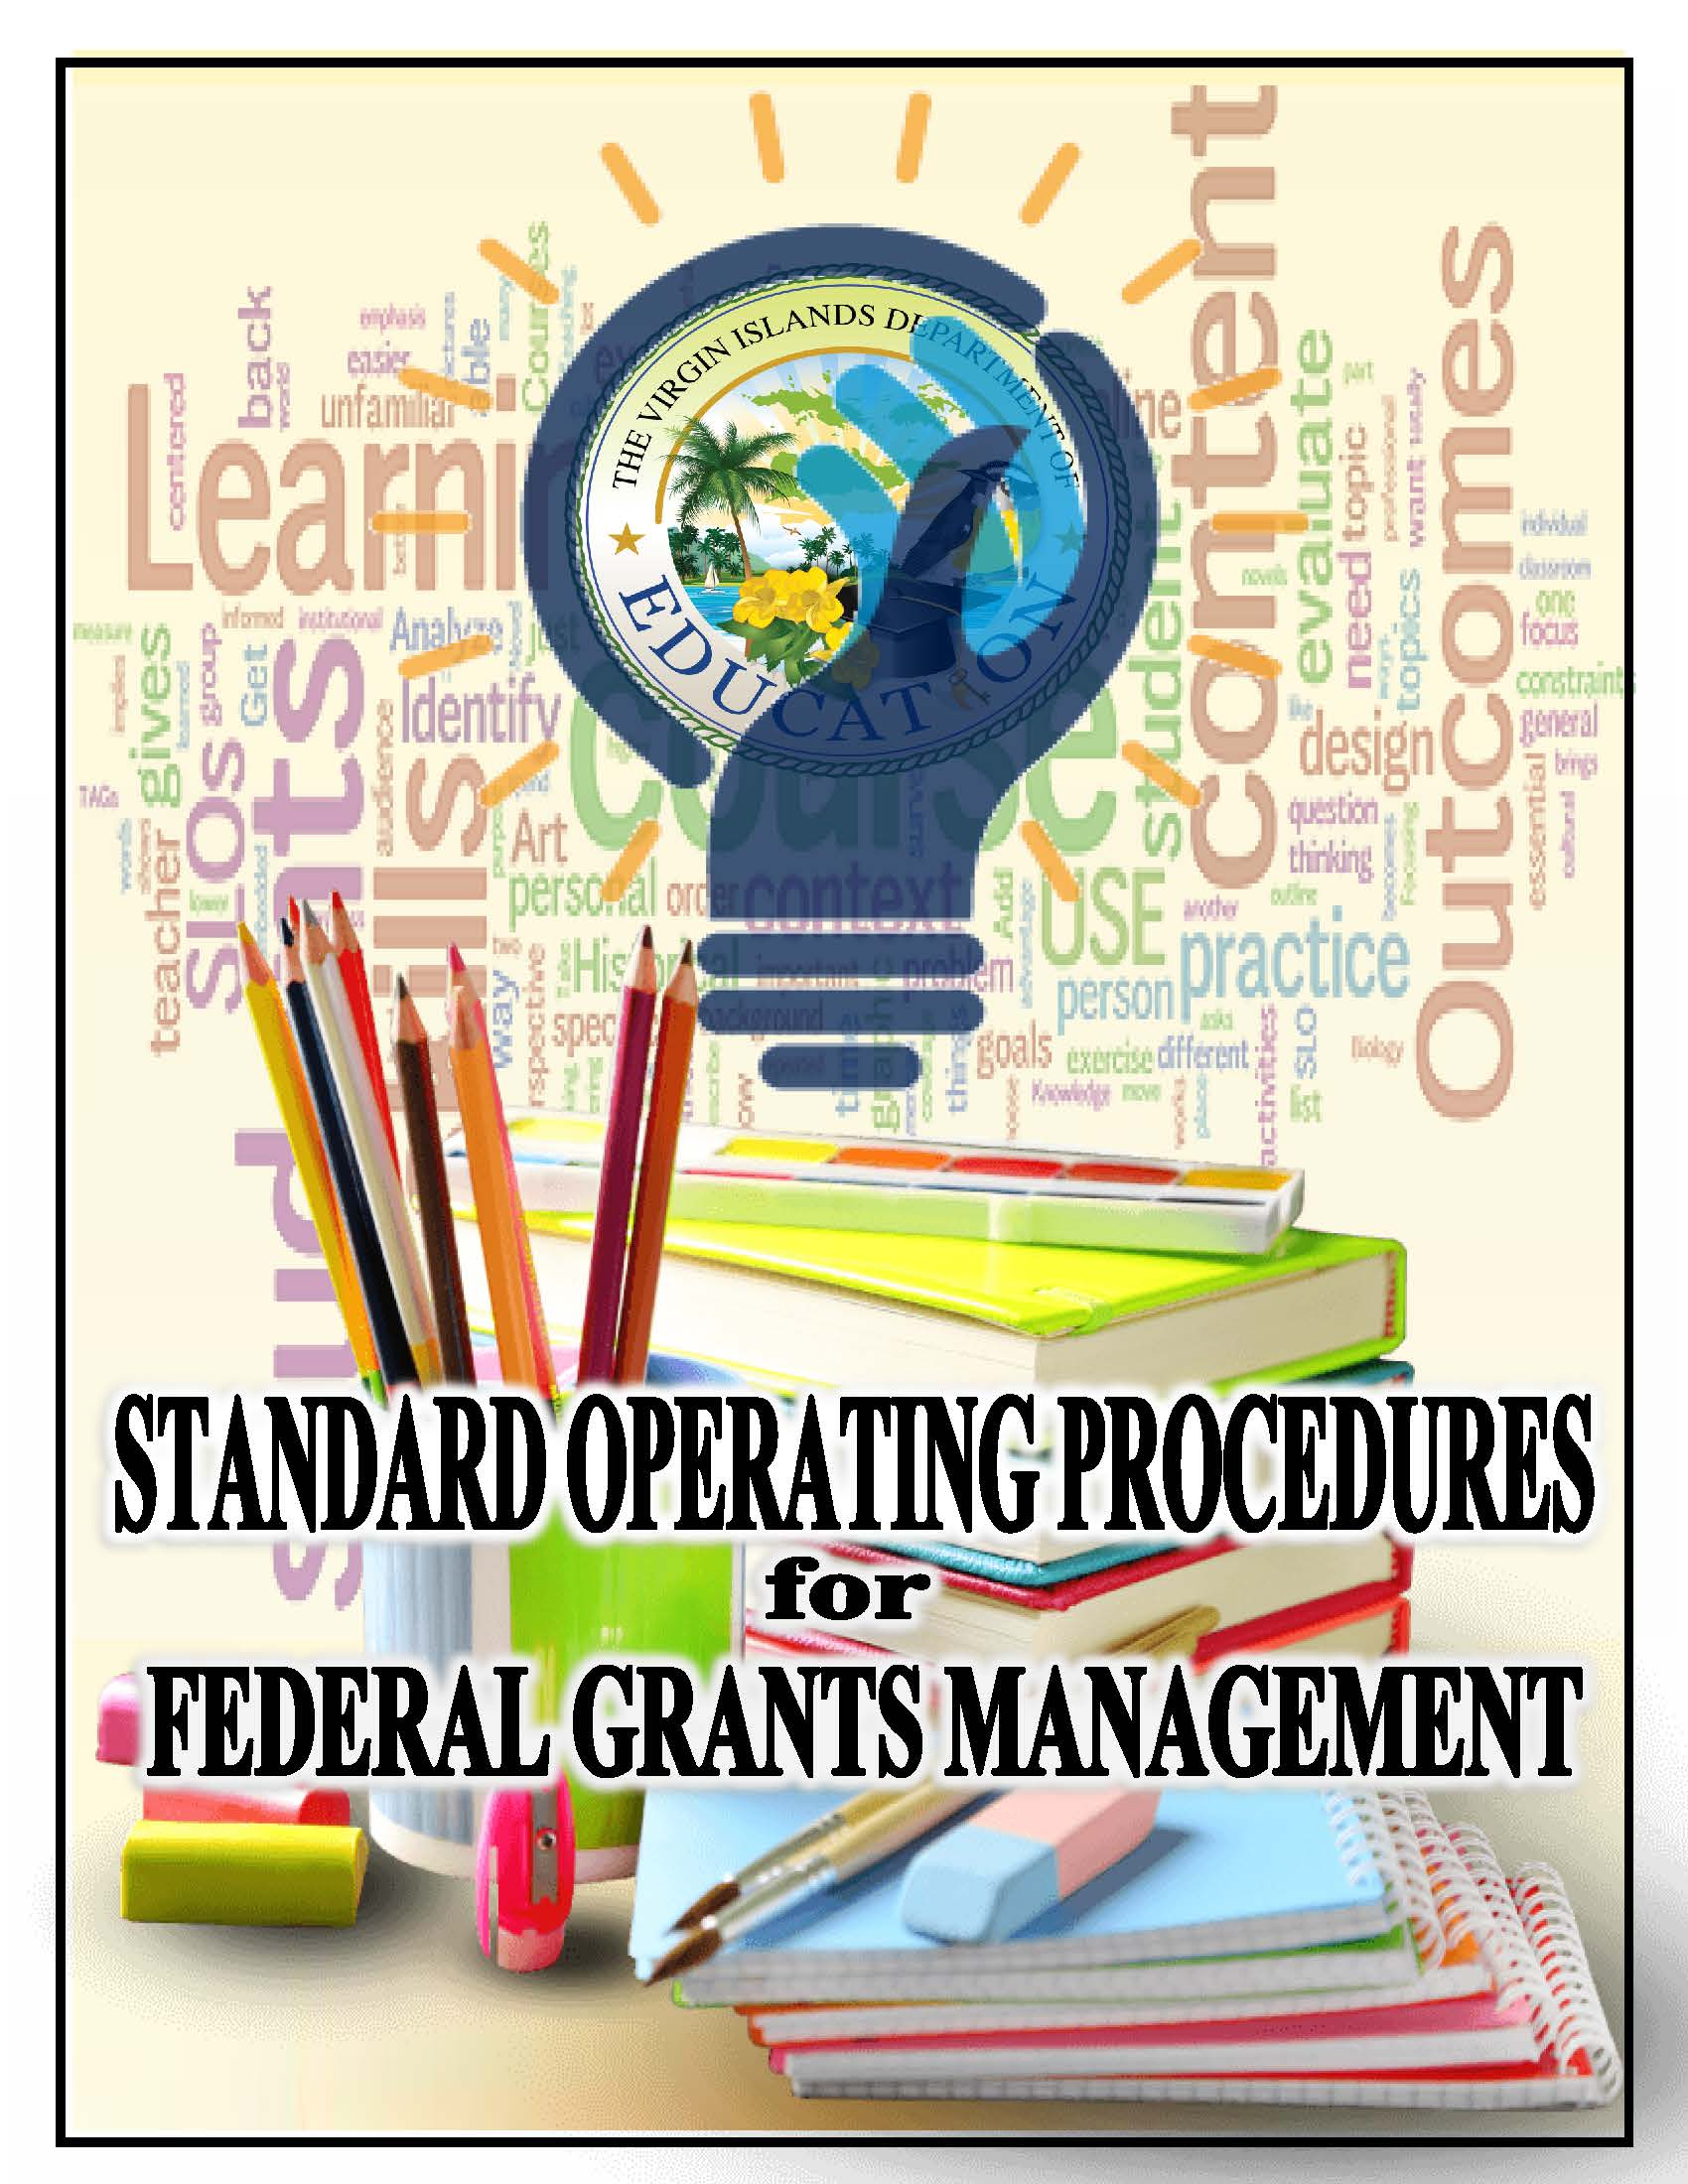 Standard Operating Procedures for Federal Grants Management Cover.pdf.jpg